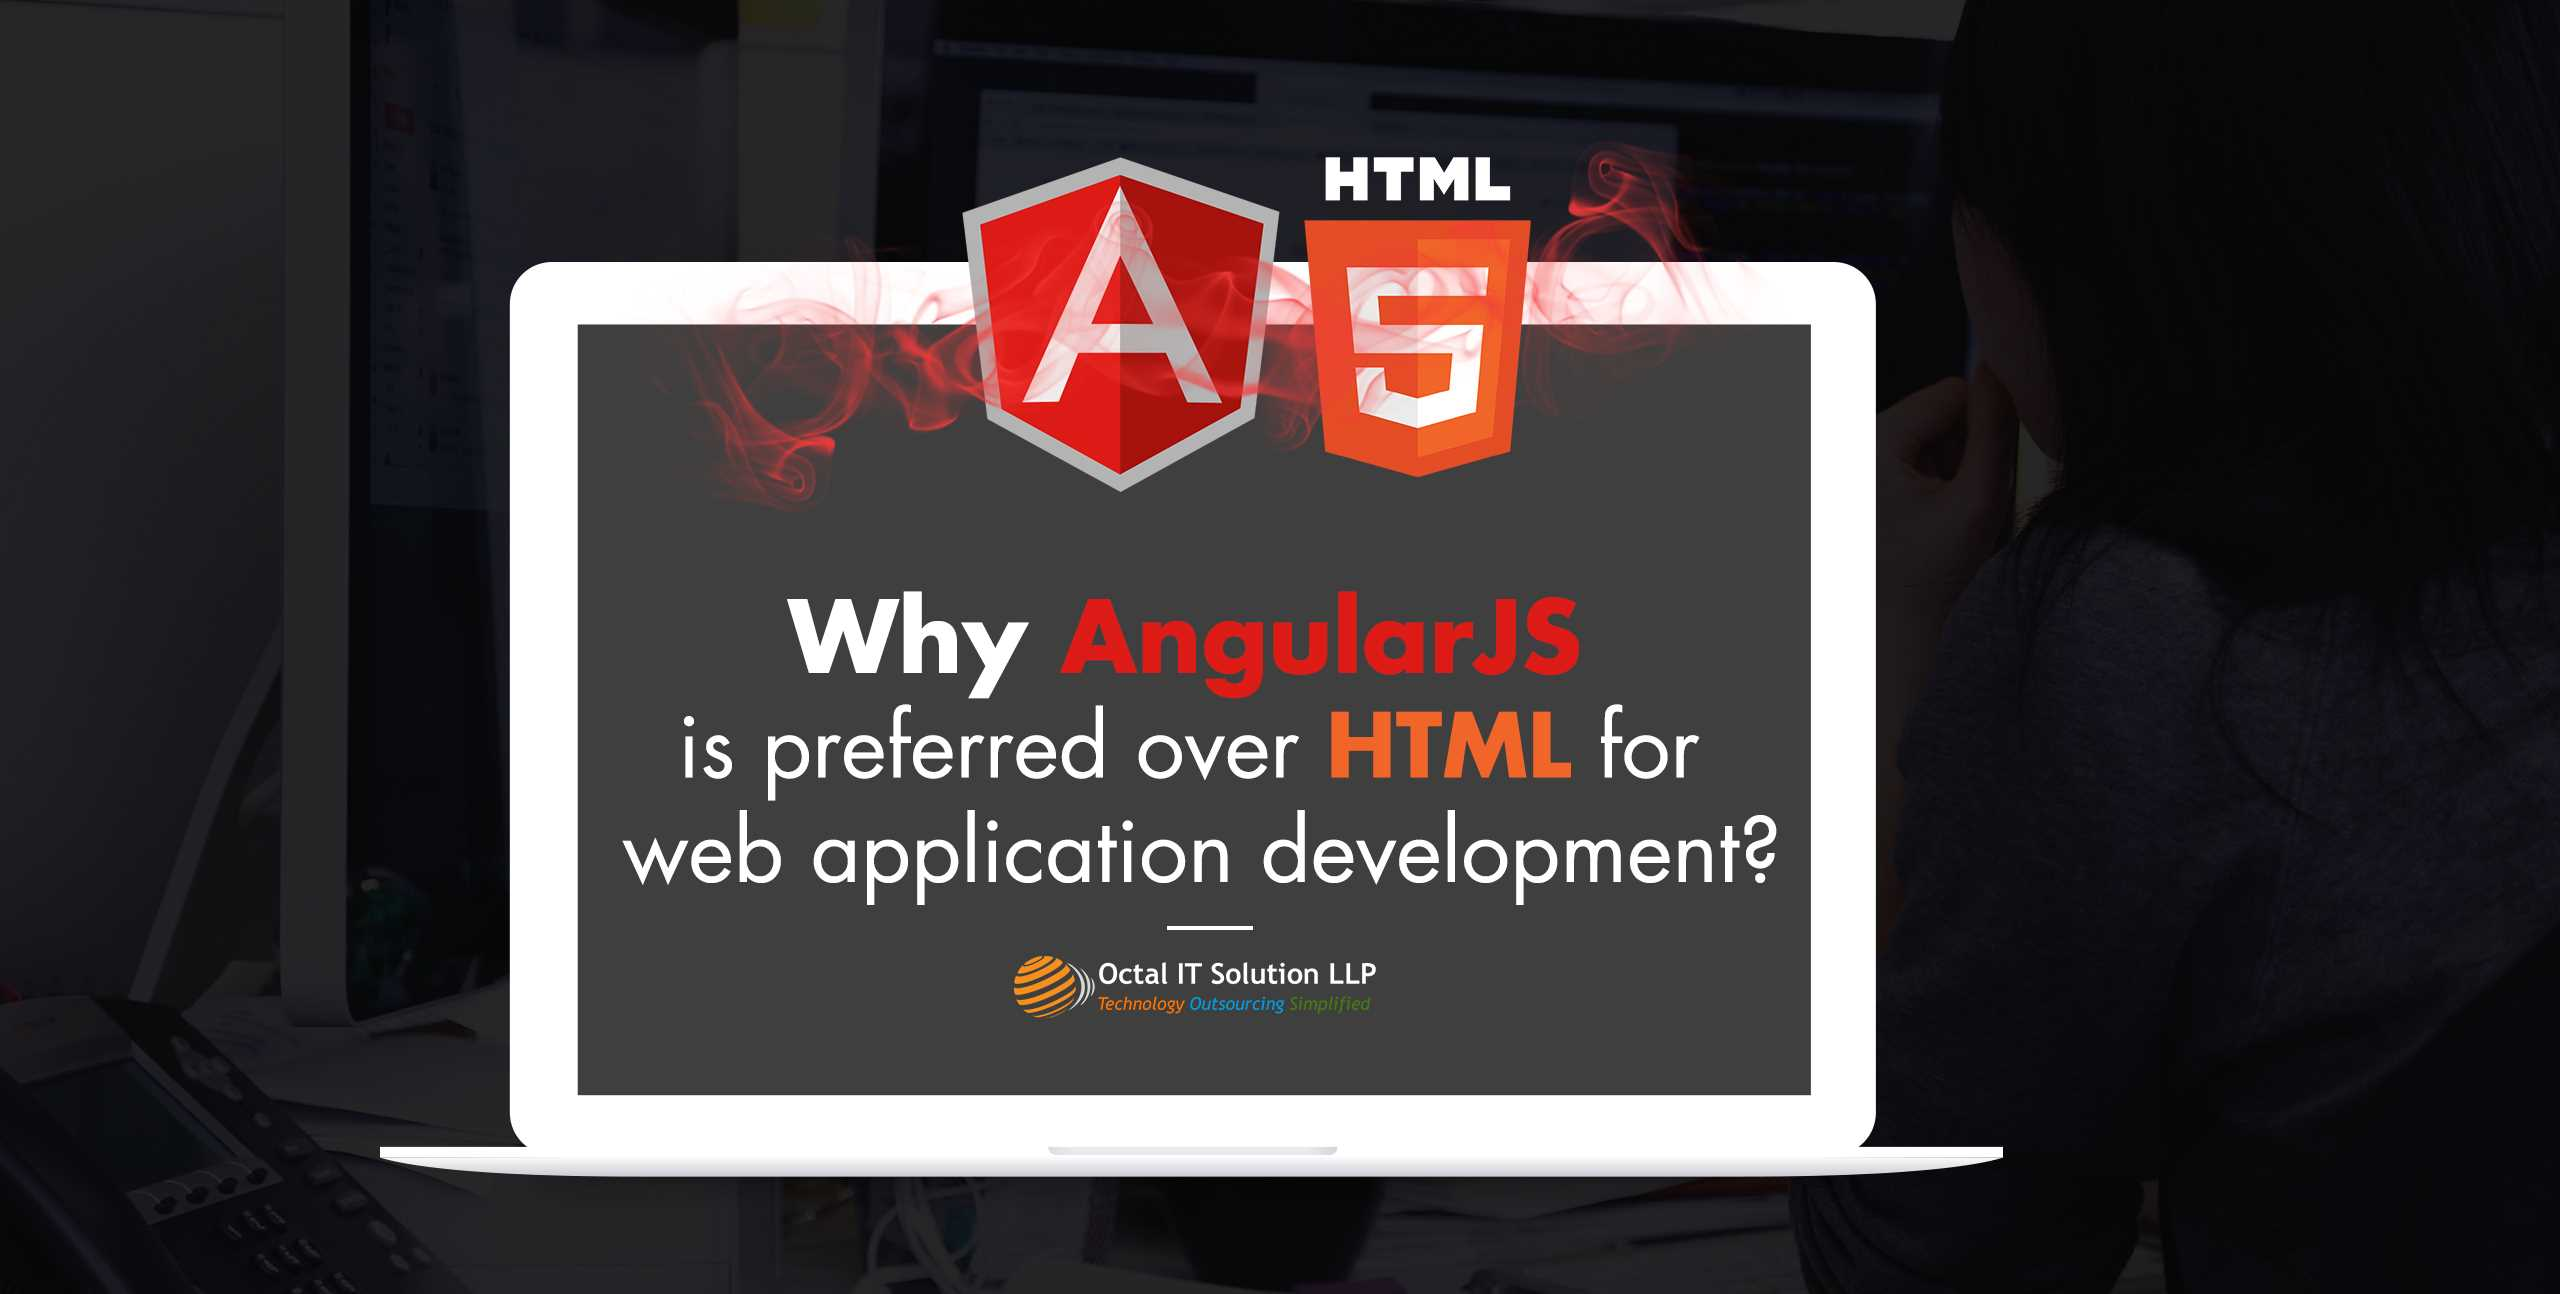 Why AngularJS is preferred over HTML for web application development?